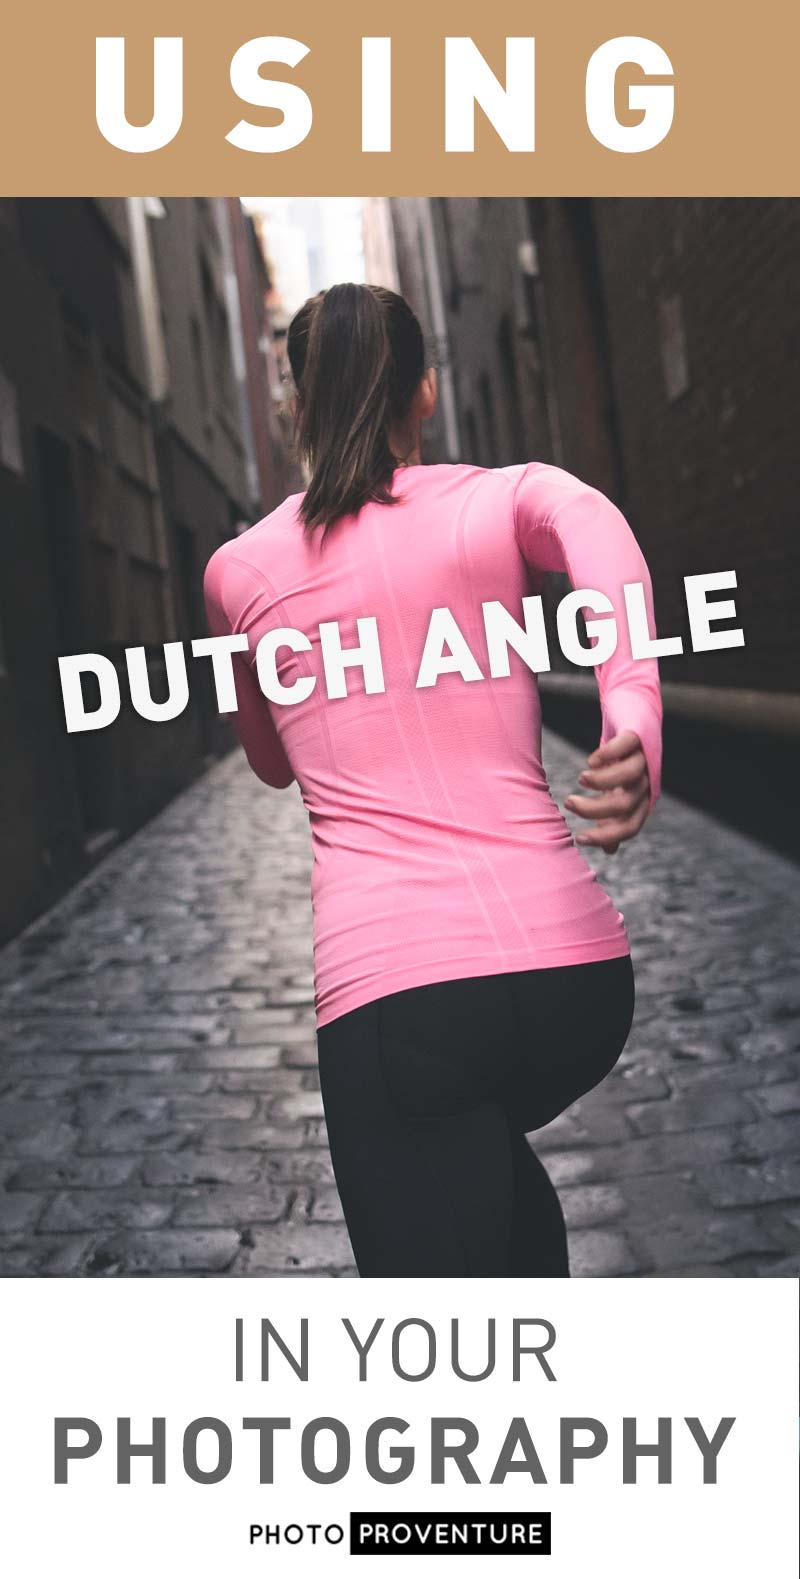 Wondering what a Dutch Angle is in photography and how you can best use it? Learn all about Dutch Angles here >